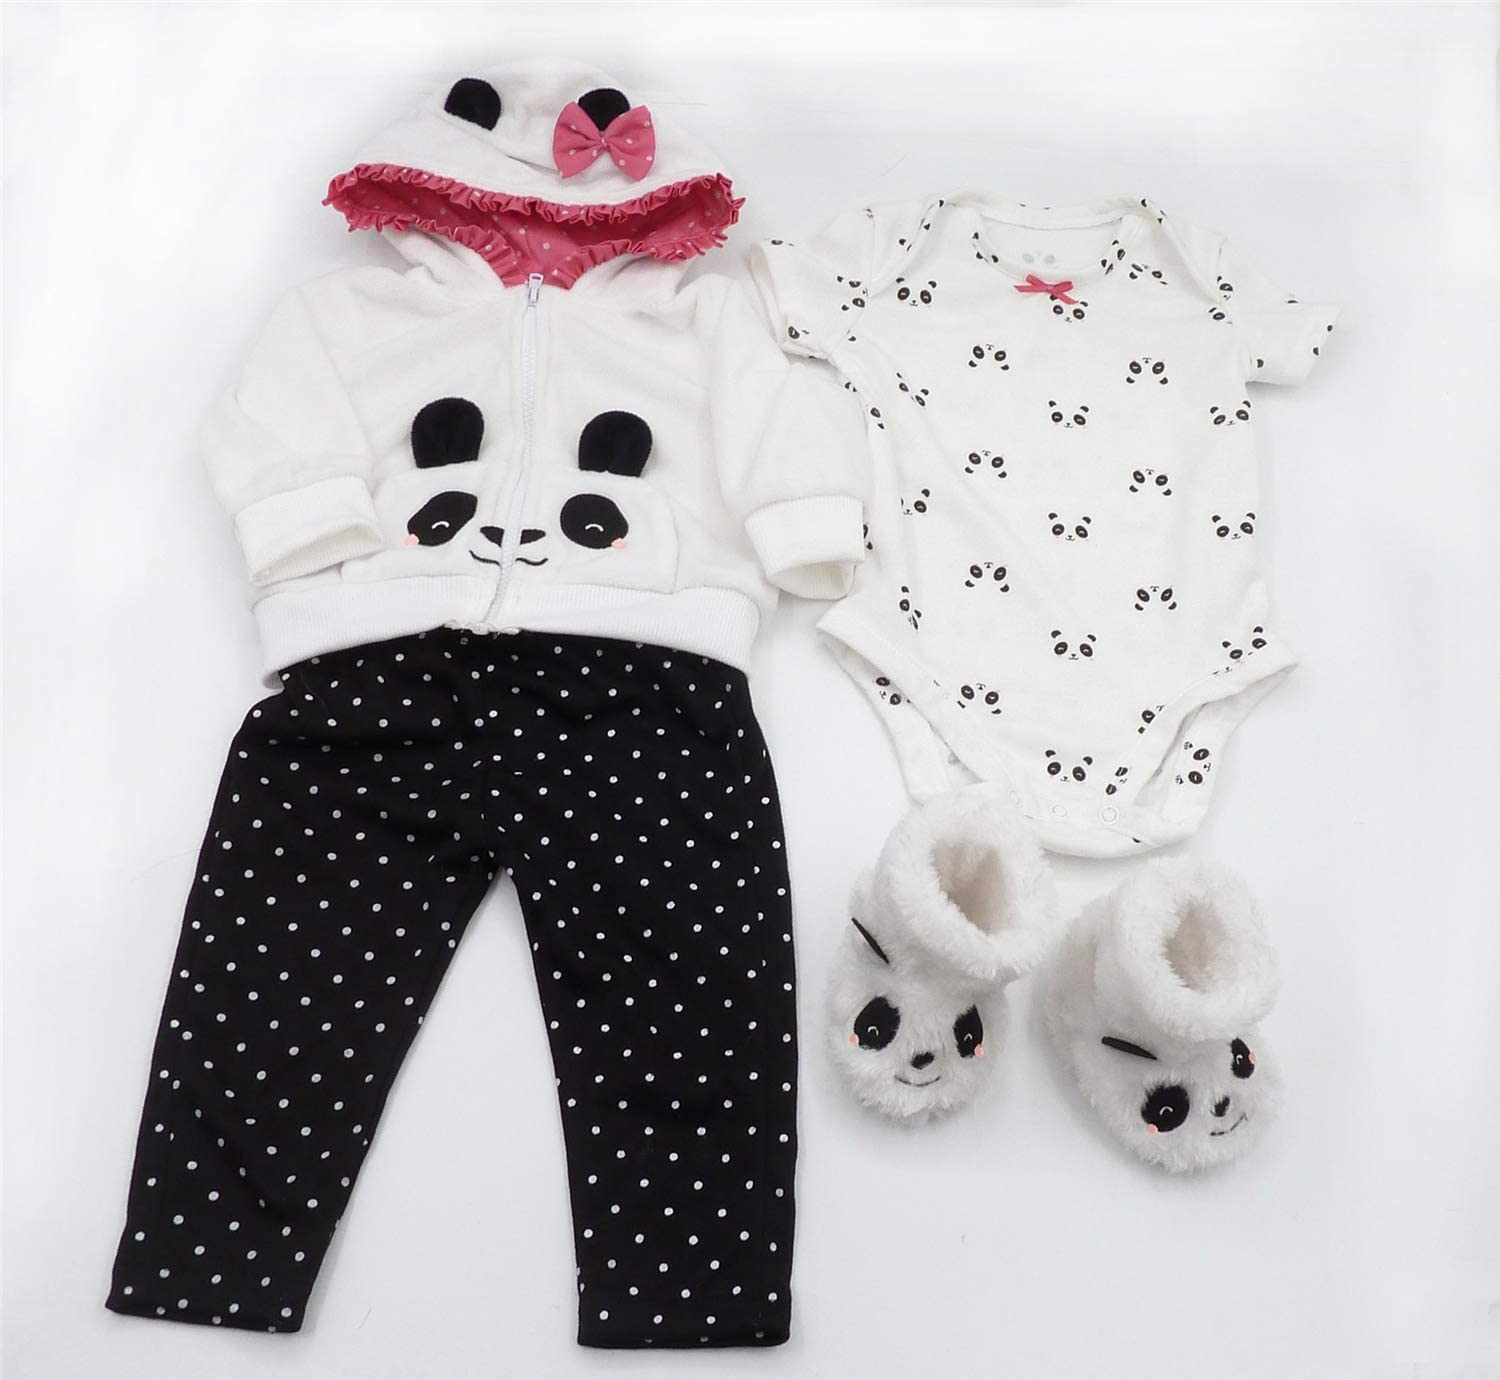 Zero Pam Real Life Reborn Toddler Girl Panda Clothes Accessories 4 Pieces Outfit Set Matching for 24 inch Reborn Toddler Dolls Outfit